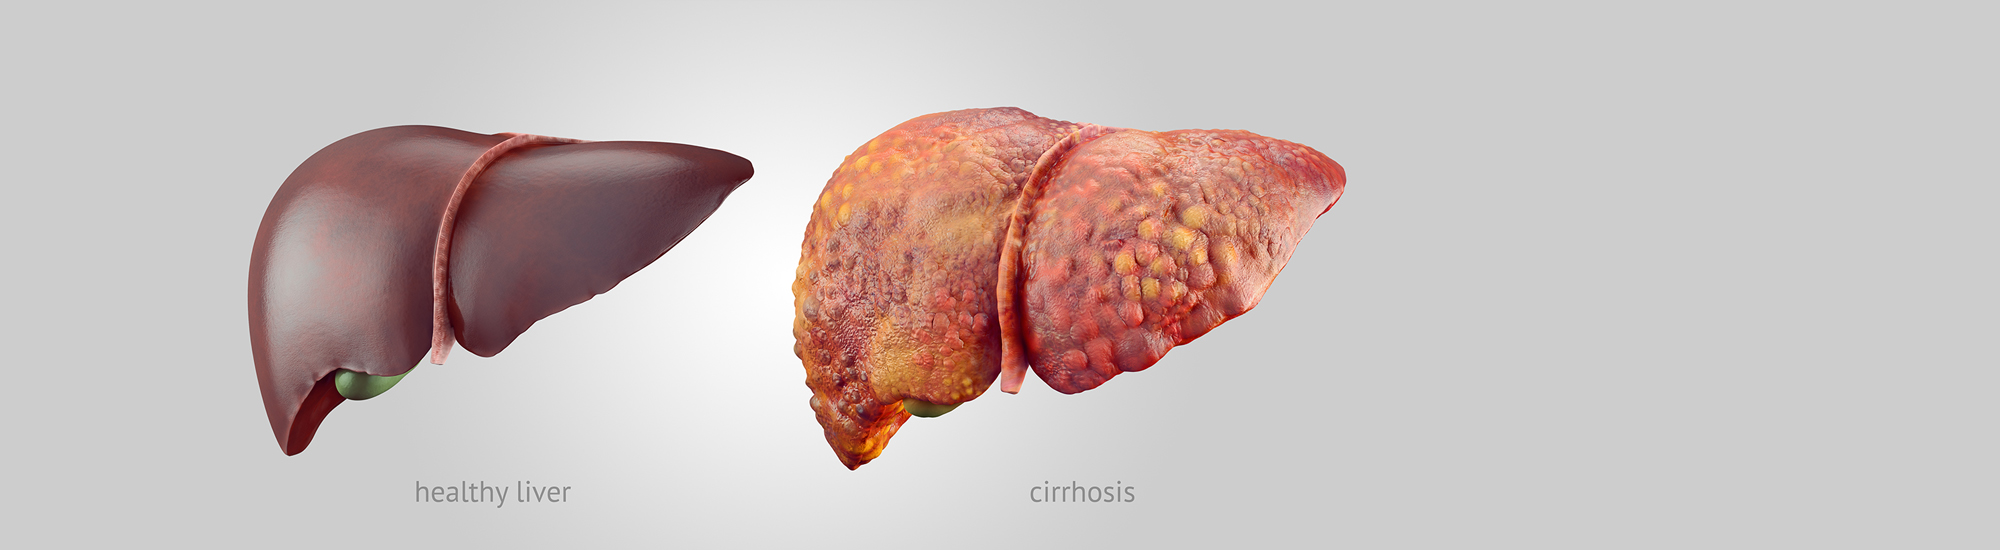 Ayurvedic treatment for Liver Cirrhosis Diagnosis